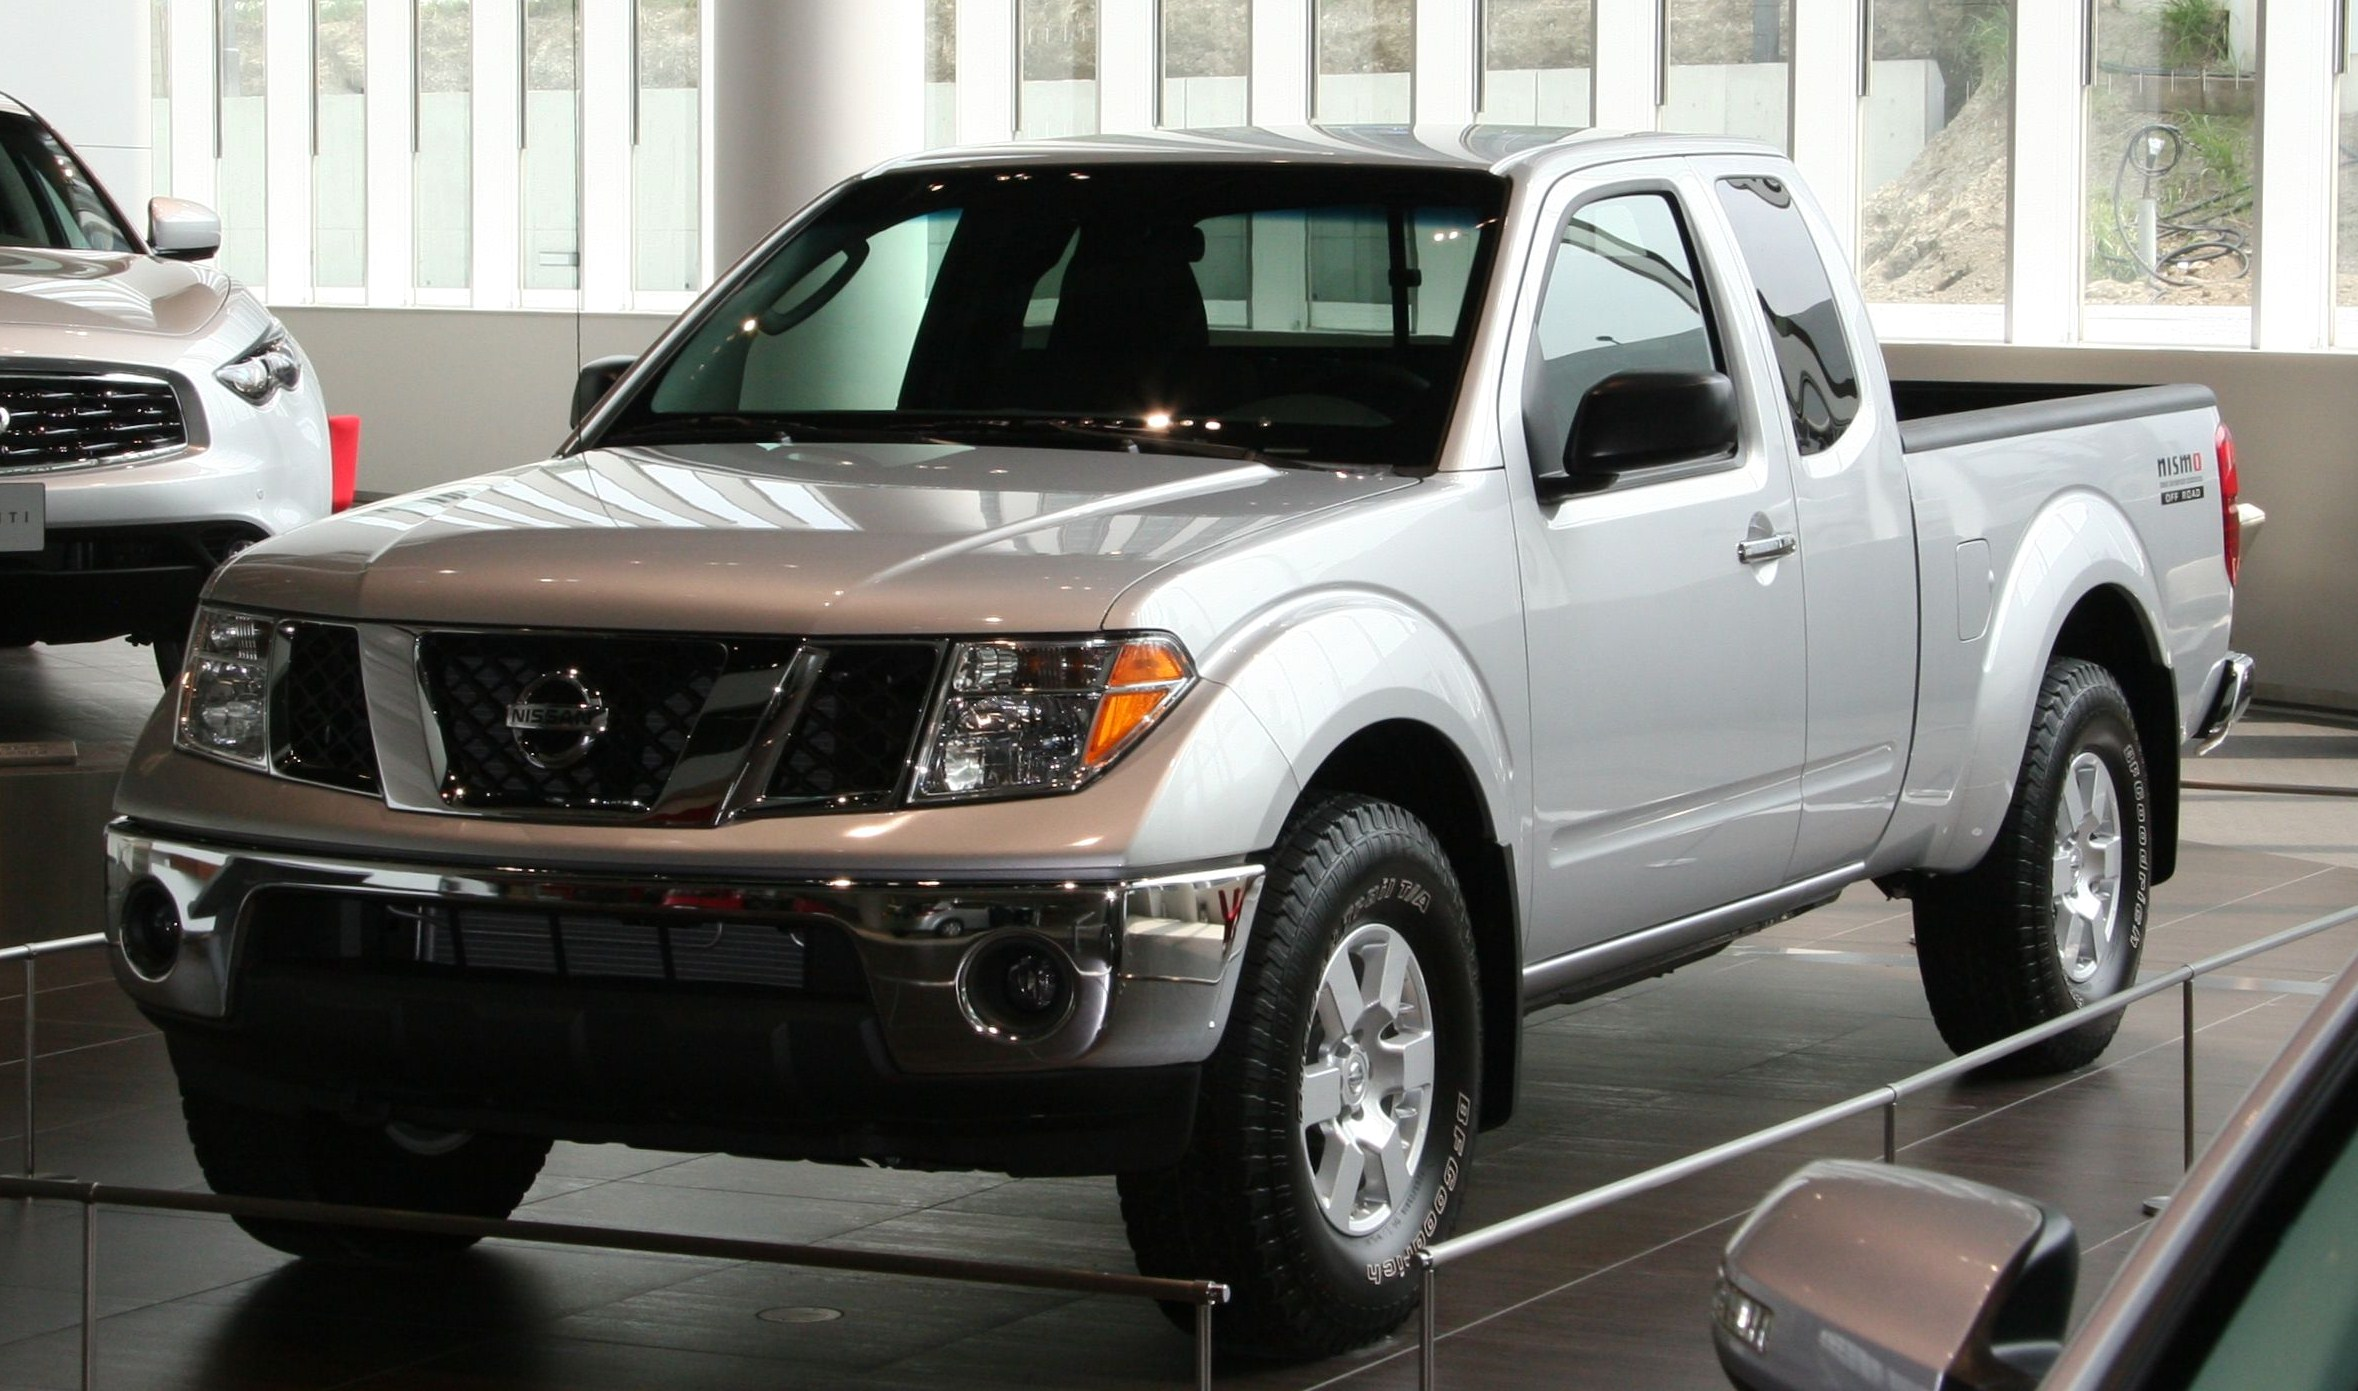 file nissan frontier nismo king wikimedia commons. Black Bedroom Furniture Sets. Home Design Ideas